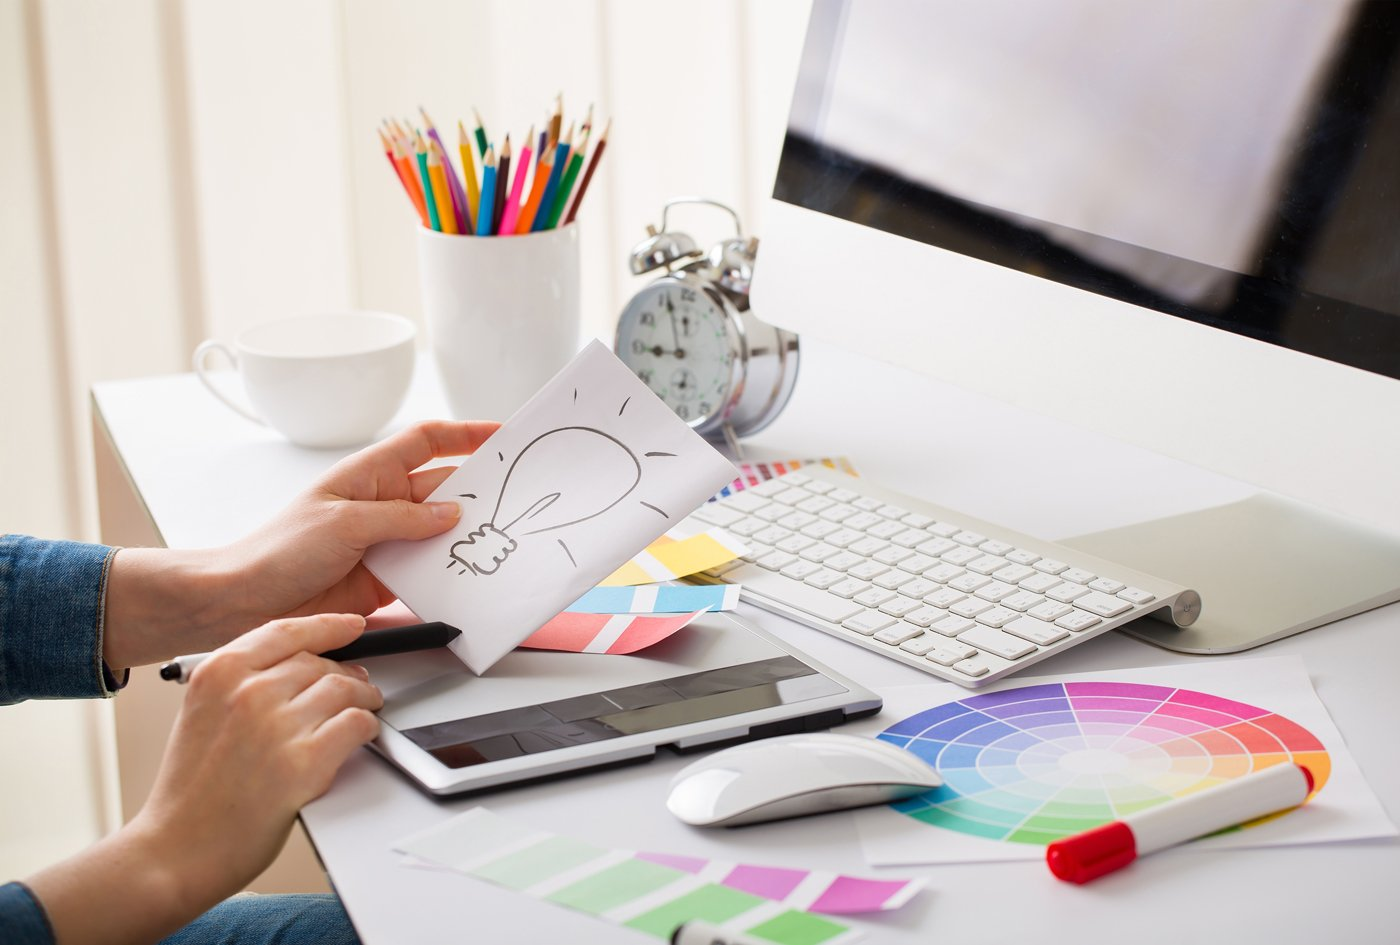 Two biggest cheap graphic design mistakes a business can for How to make a blueprint online